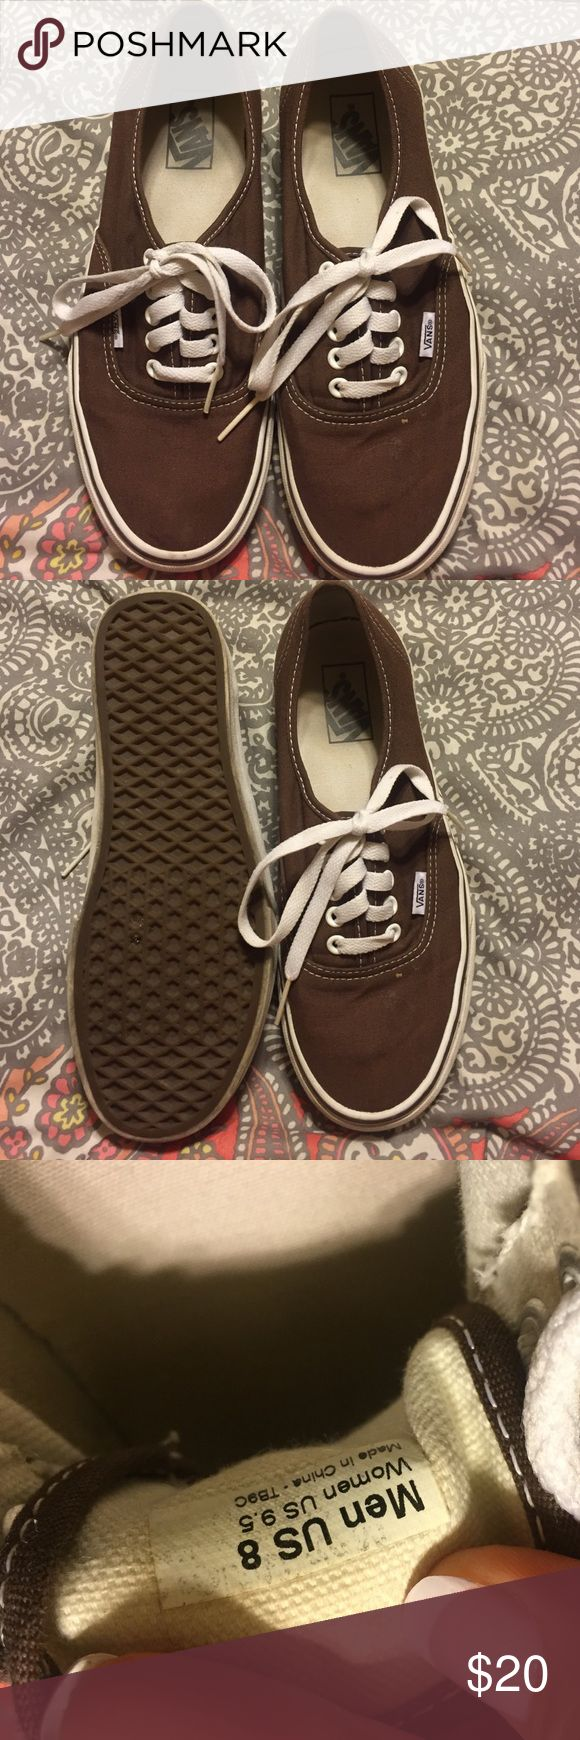 Brown Vans Pair of size 8 Mens or 9.5 Women's brown vans. Good condition. Ready for new owner! Vans Shoes Sneakers